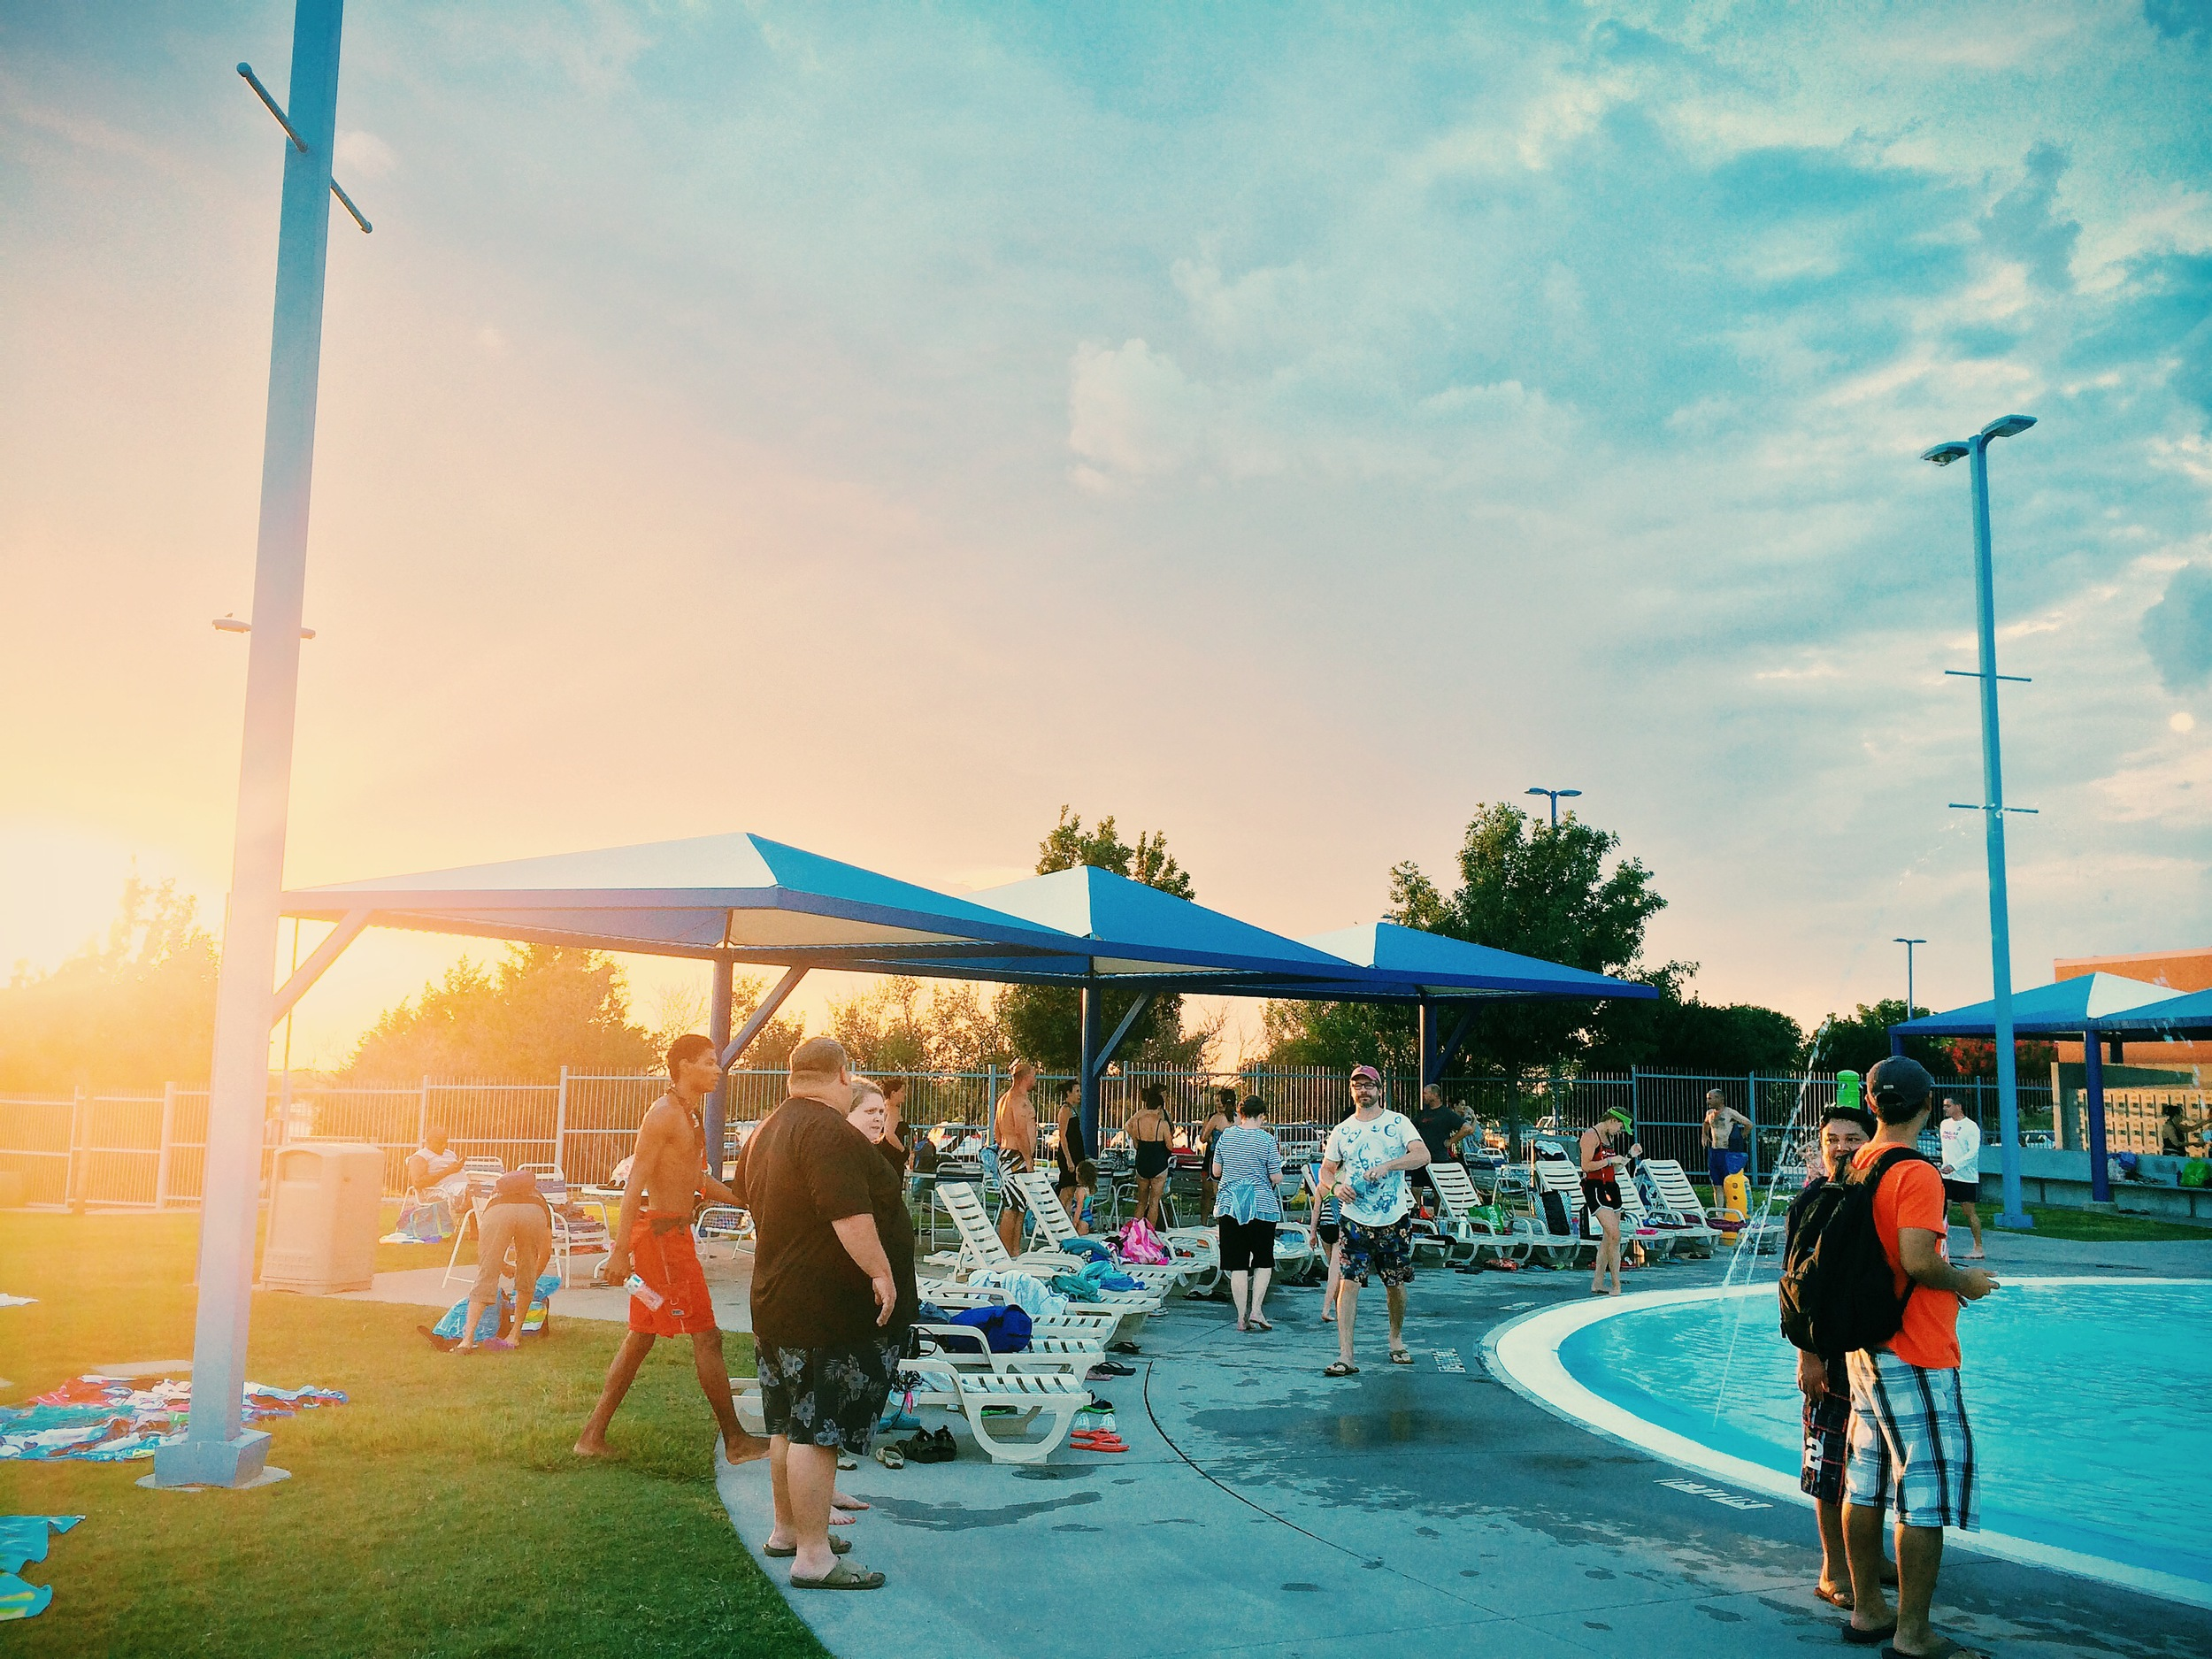 The City of Denton Public Library's Reading Program celebrated the end of the summer with a free night at Waterworks Park with the folks who made it through all thirty days worth of reading (we actually read for more). It was a crowded night at the water park.